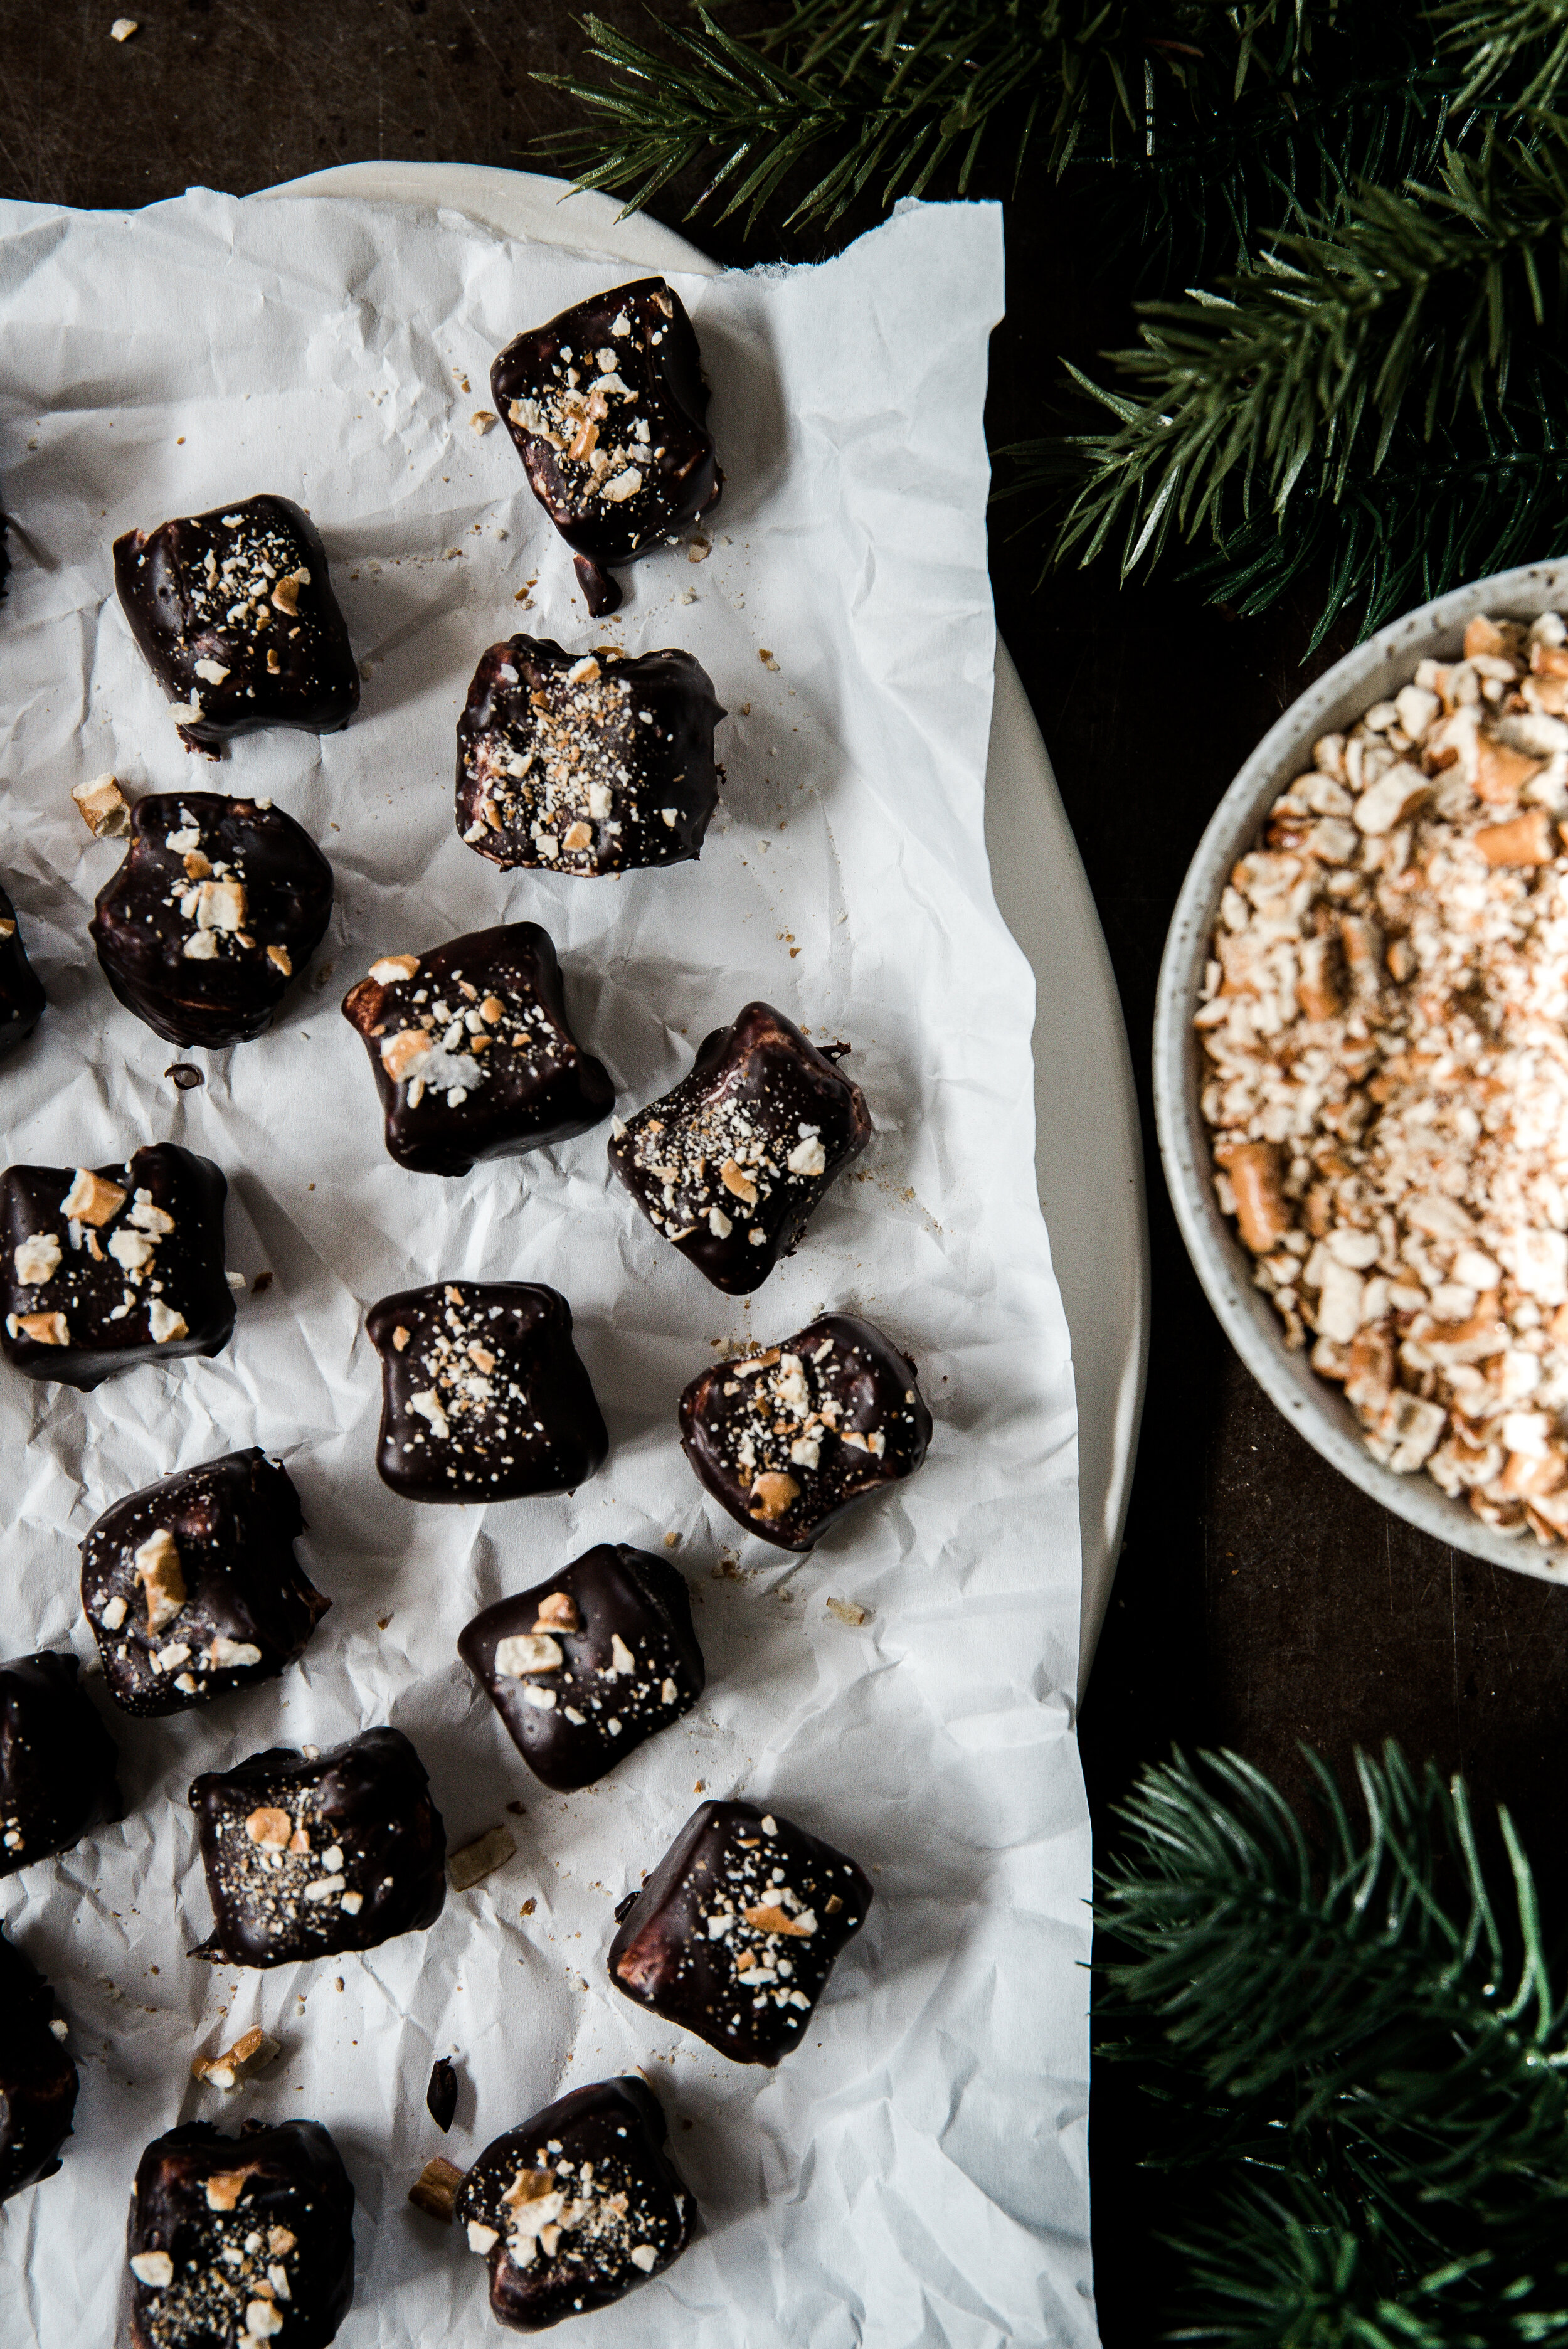 Chocolate covered marshmallows make the most delicious and easiest no-bake Christmas treats ever! Download my free printable labels to make these chocolate dipped marshmallows a festive holiday food gift!